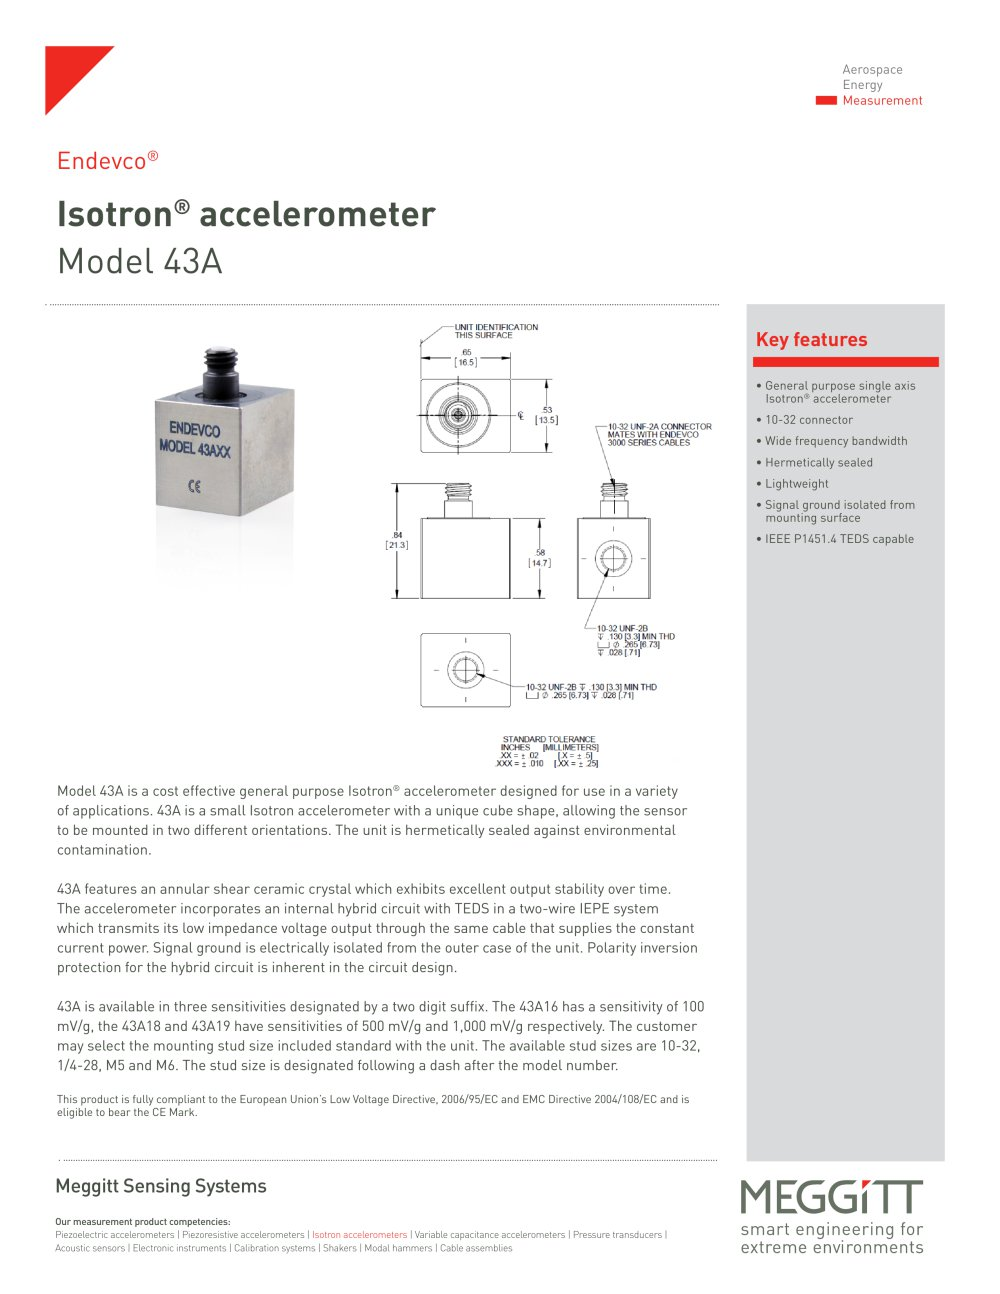 43A - Meggitt Sensing Systems - Measurement Group - PDF Catalogue ...